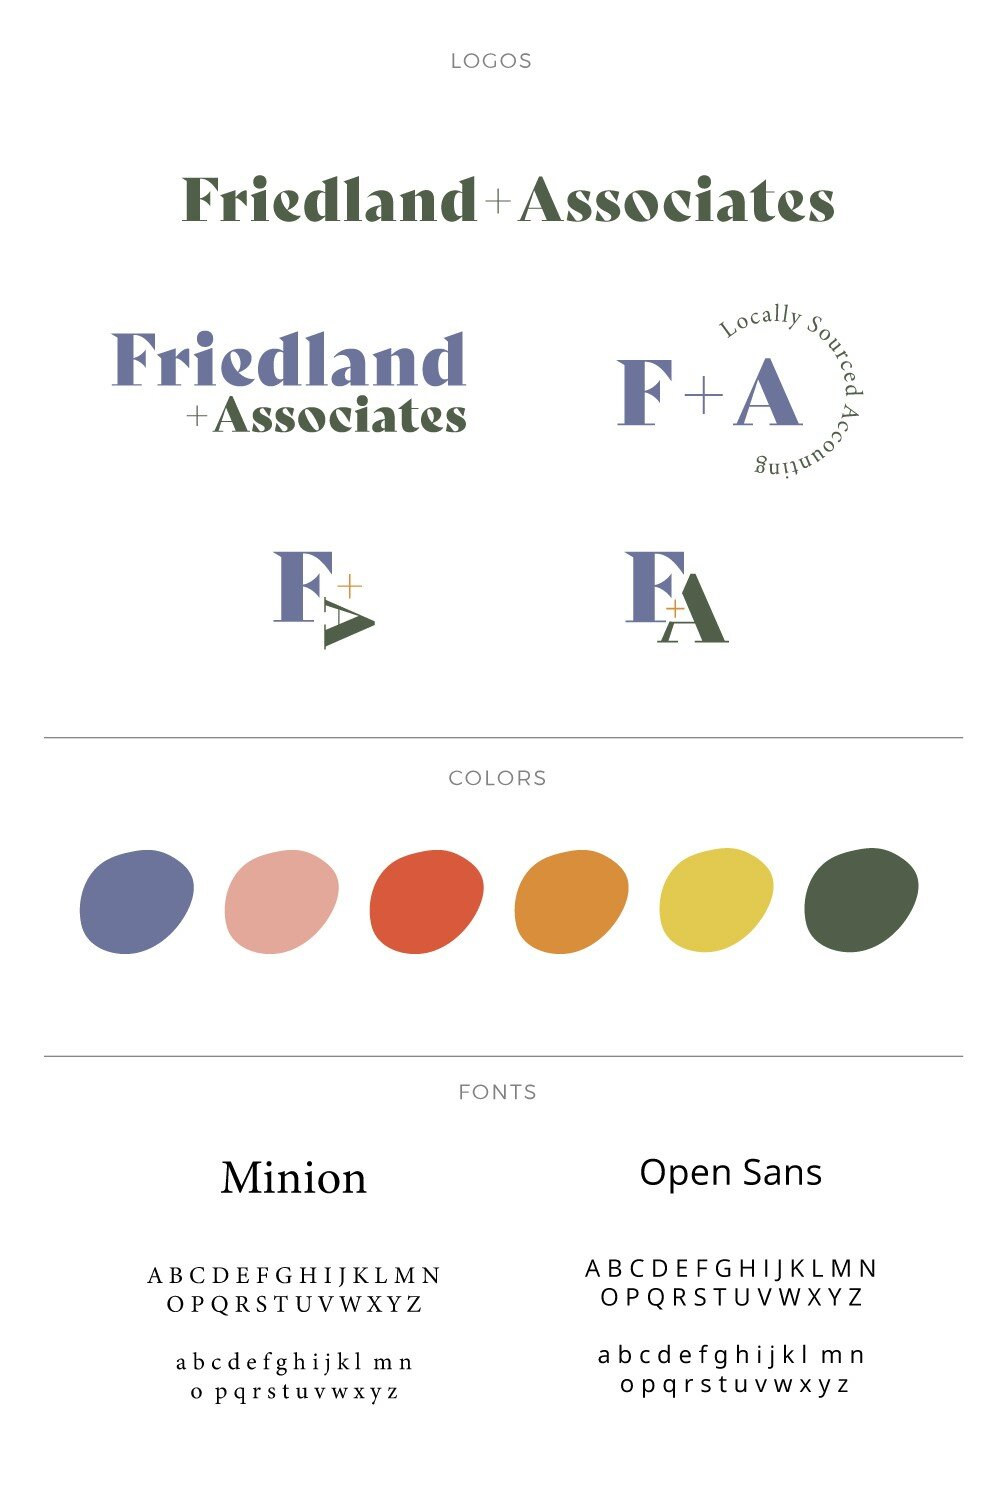 Some preliminary logo versions and the bright color palette for the website and illustrations